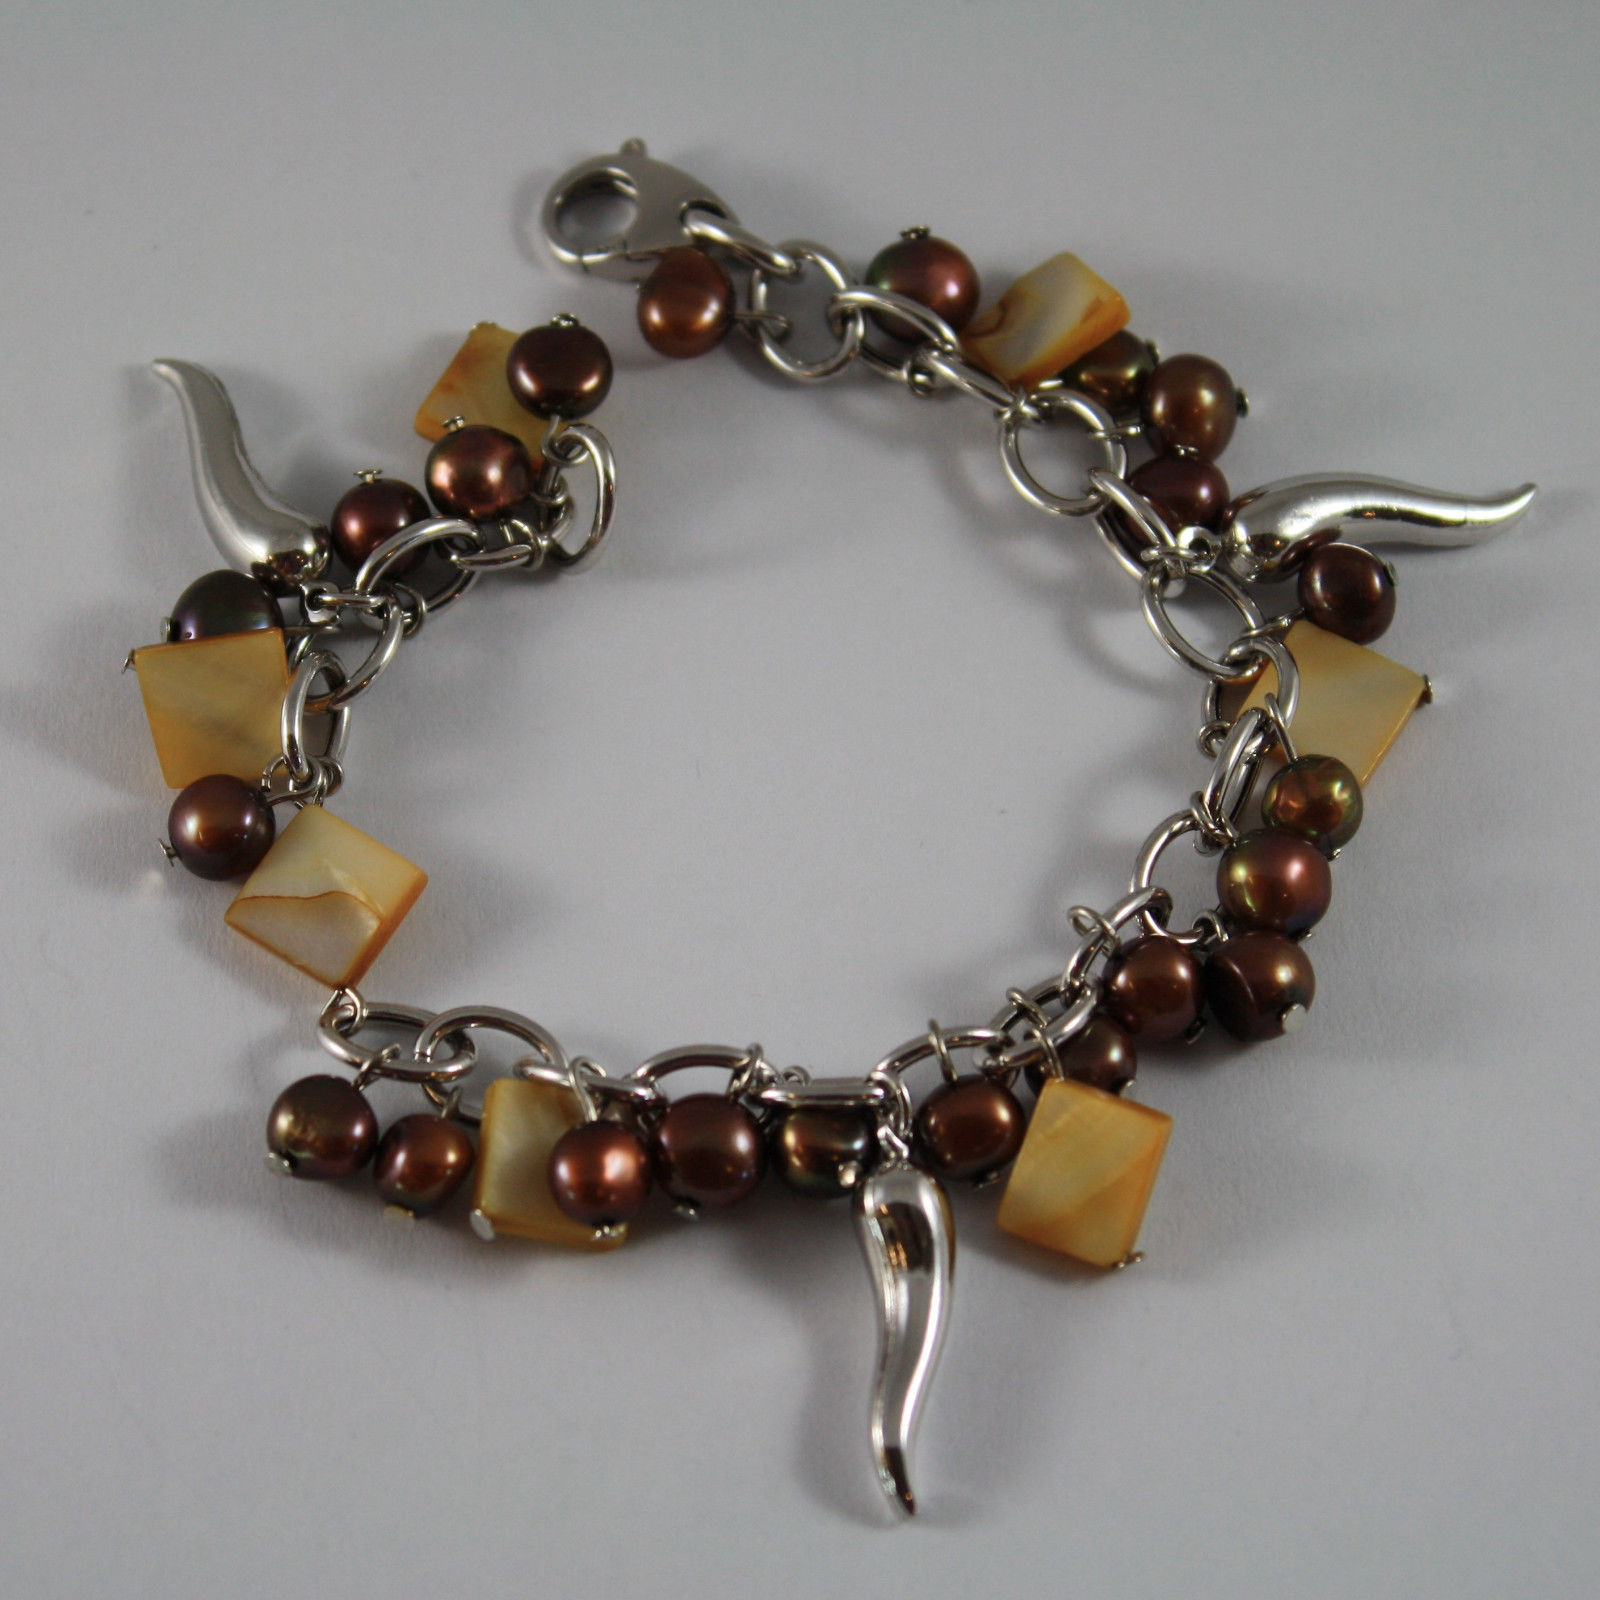 .925 RHODIUM SILVER BRACELET WITH BROWN PEARLS, MOTHER OF PEARL AND HORNS CHARM